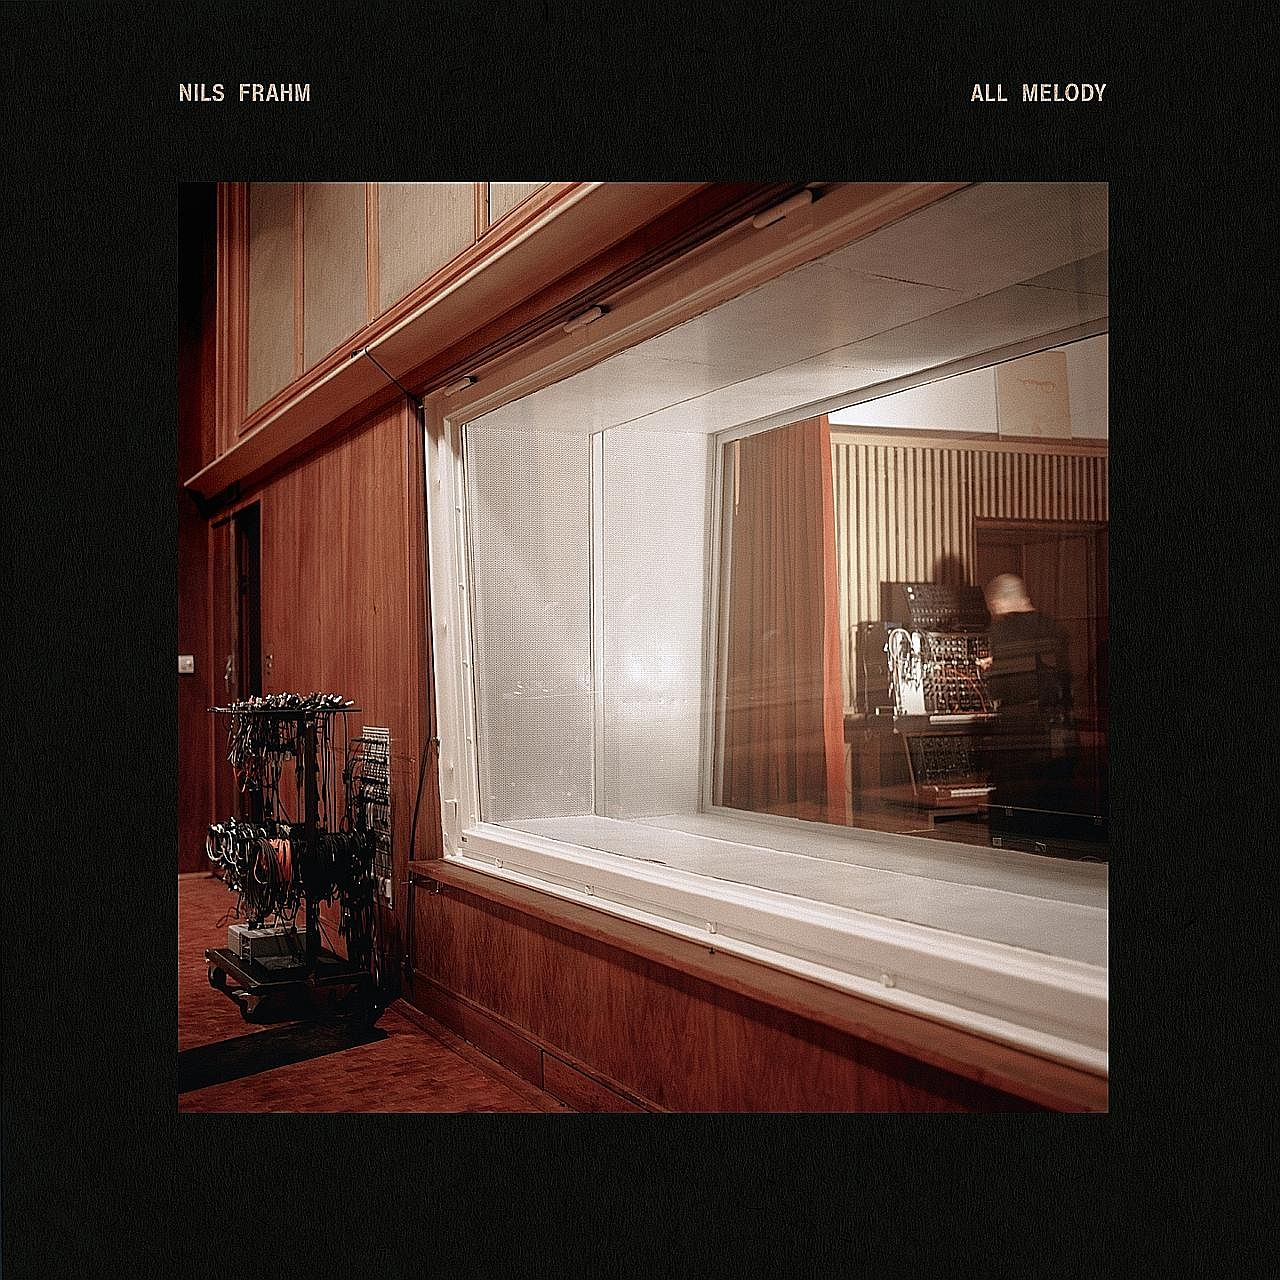 Nils Frahm spent two years recording All Melody in the Saal 3 studio in Berlin.